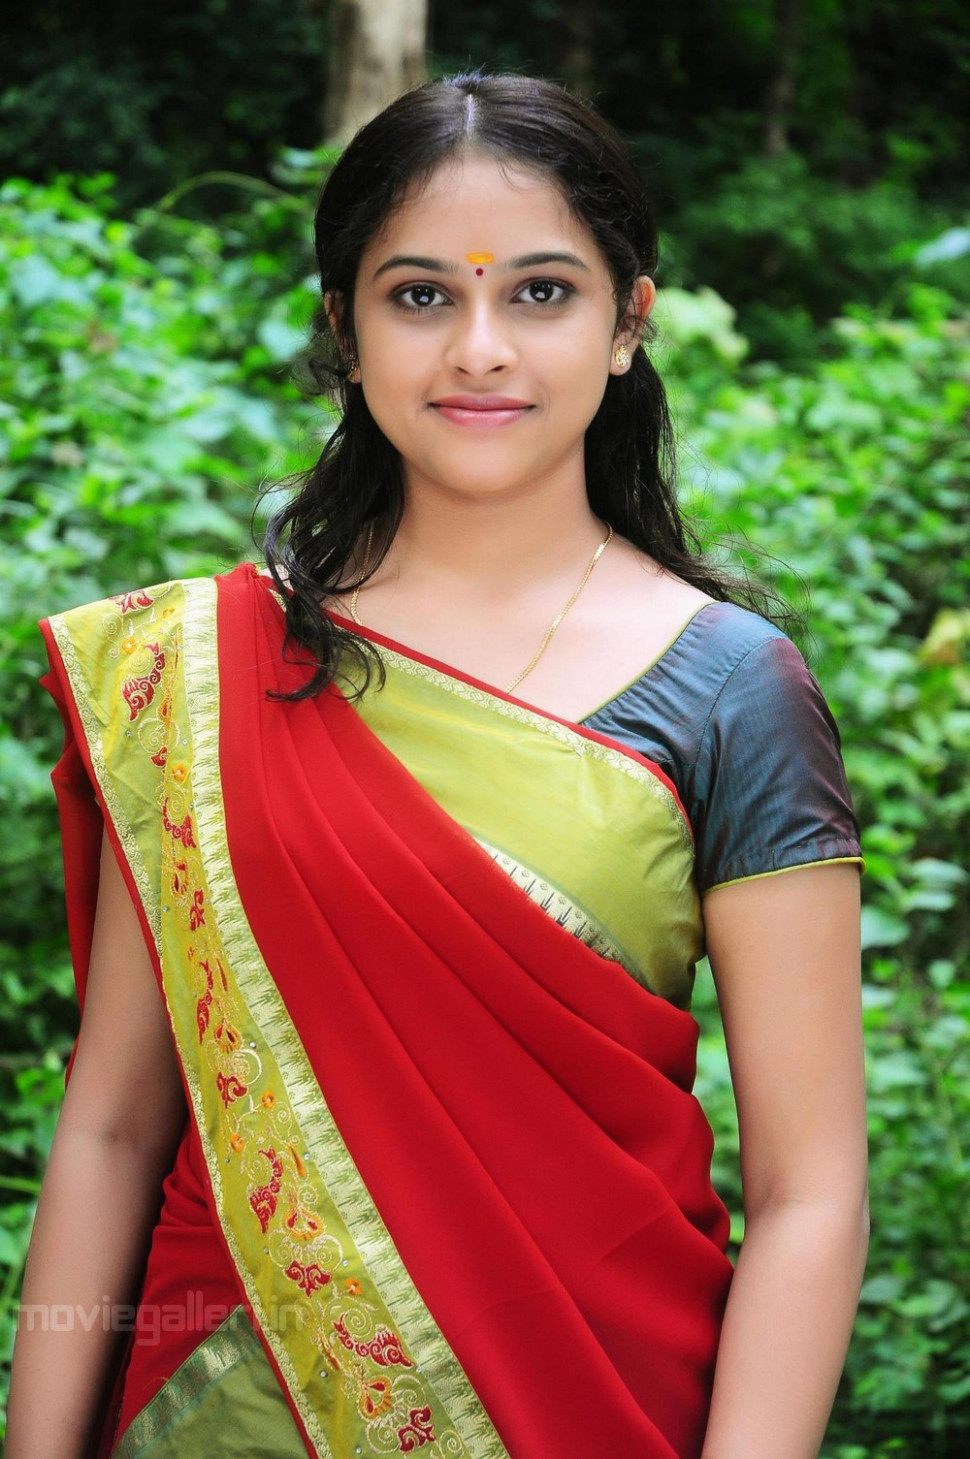 Telugu Actress Sri Divya in Saree Photo Gallery ...